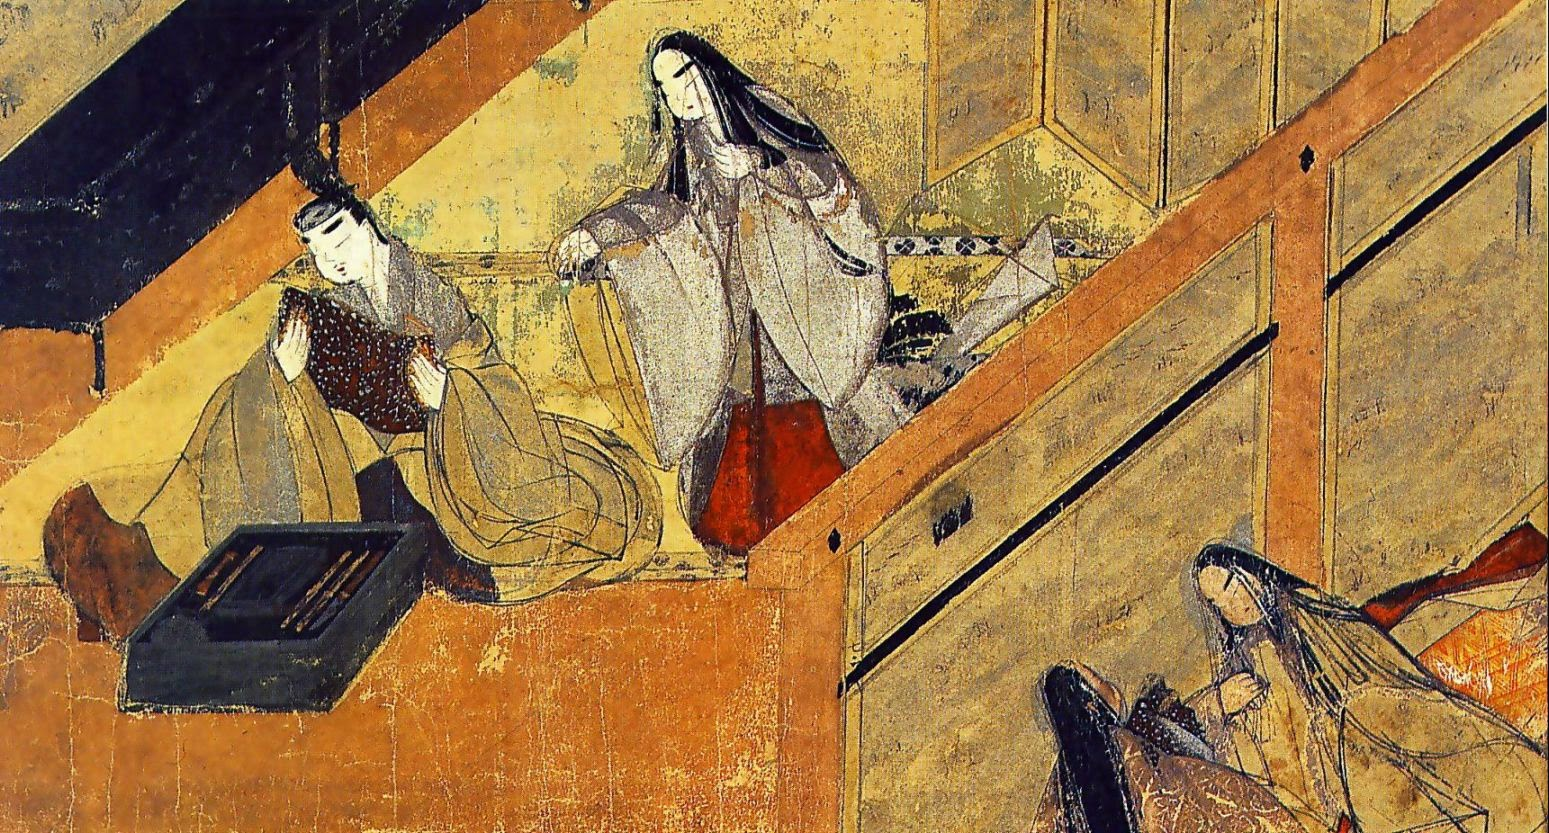 genji monogatari or the tale of genji essay The tale of genji essays are academic essays for citation these papers were written primarily by students and provide critical analysis of the tale of genji by murasaki shikibu.